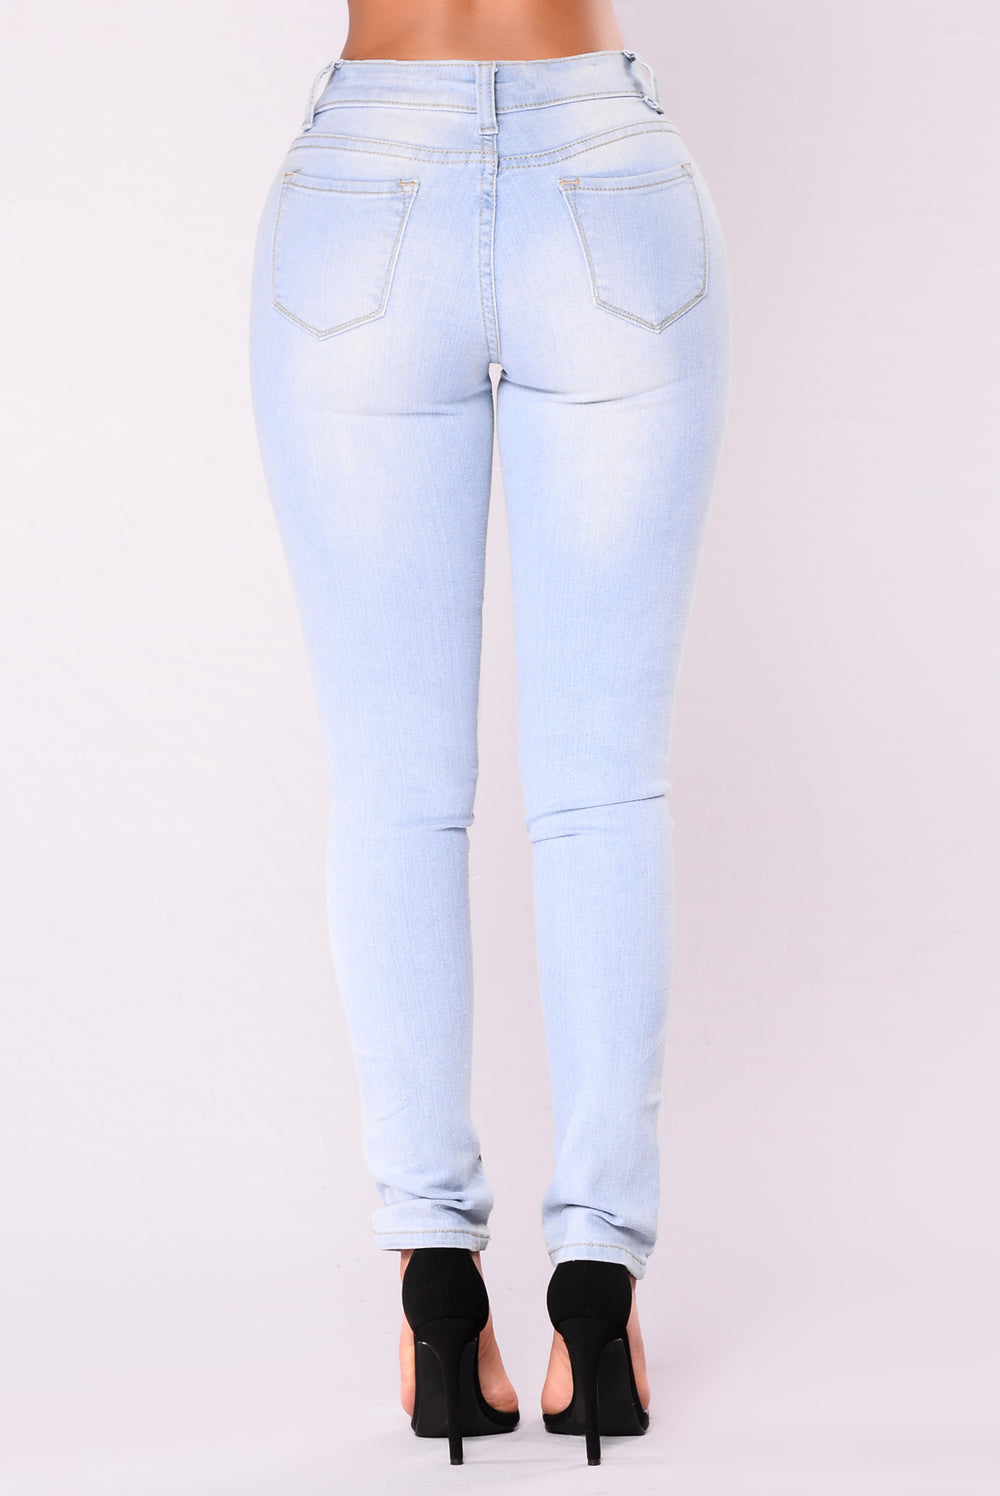 Stay Saucy Skinny Jeans - Light Denim